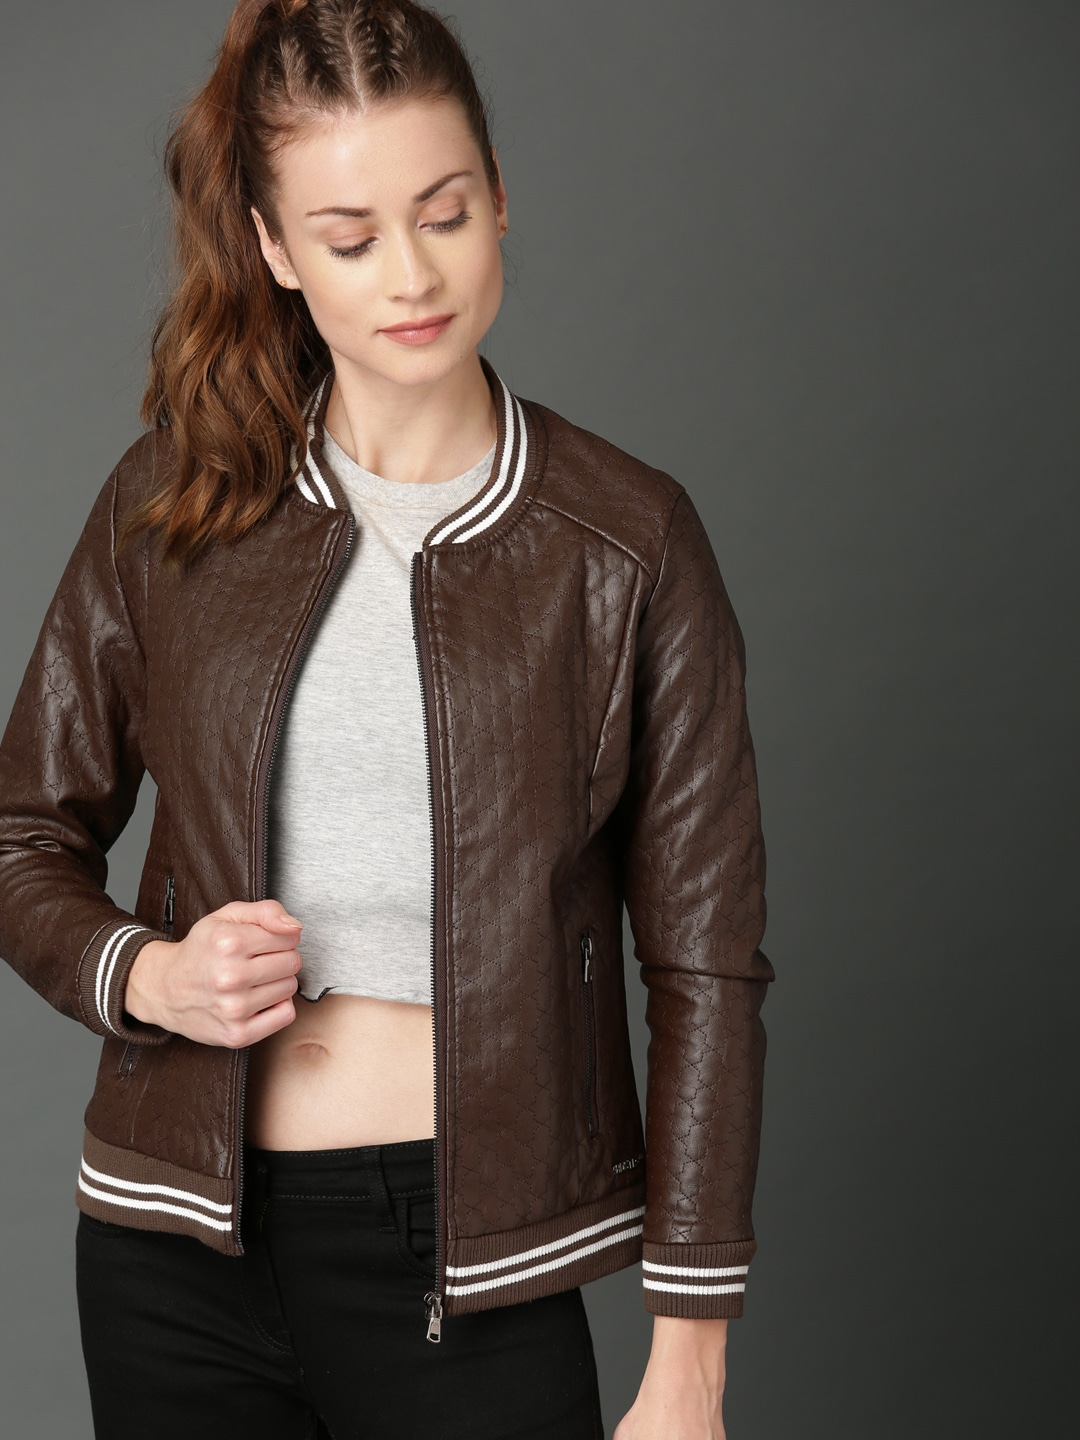 30de760e4b8 Jackets for Women - Buy Casual Leather Jackets for Women Online